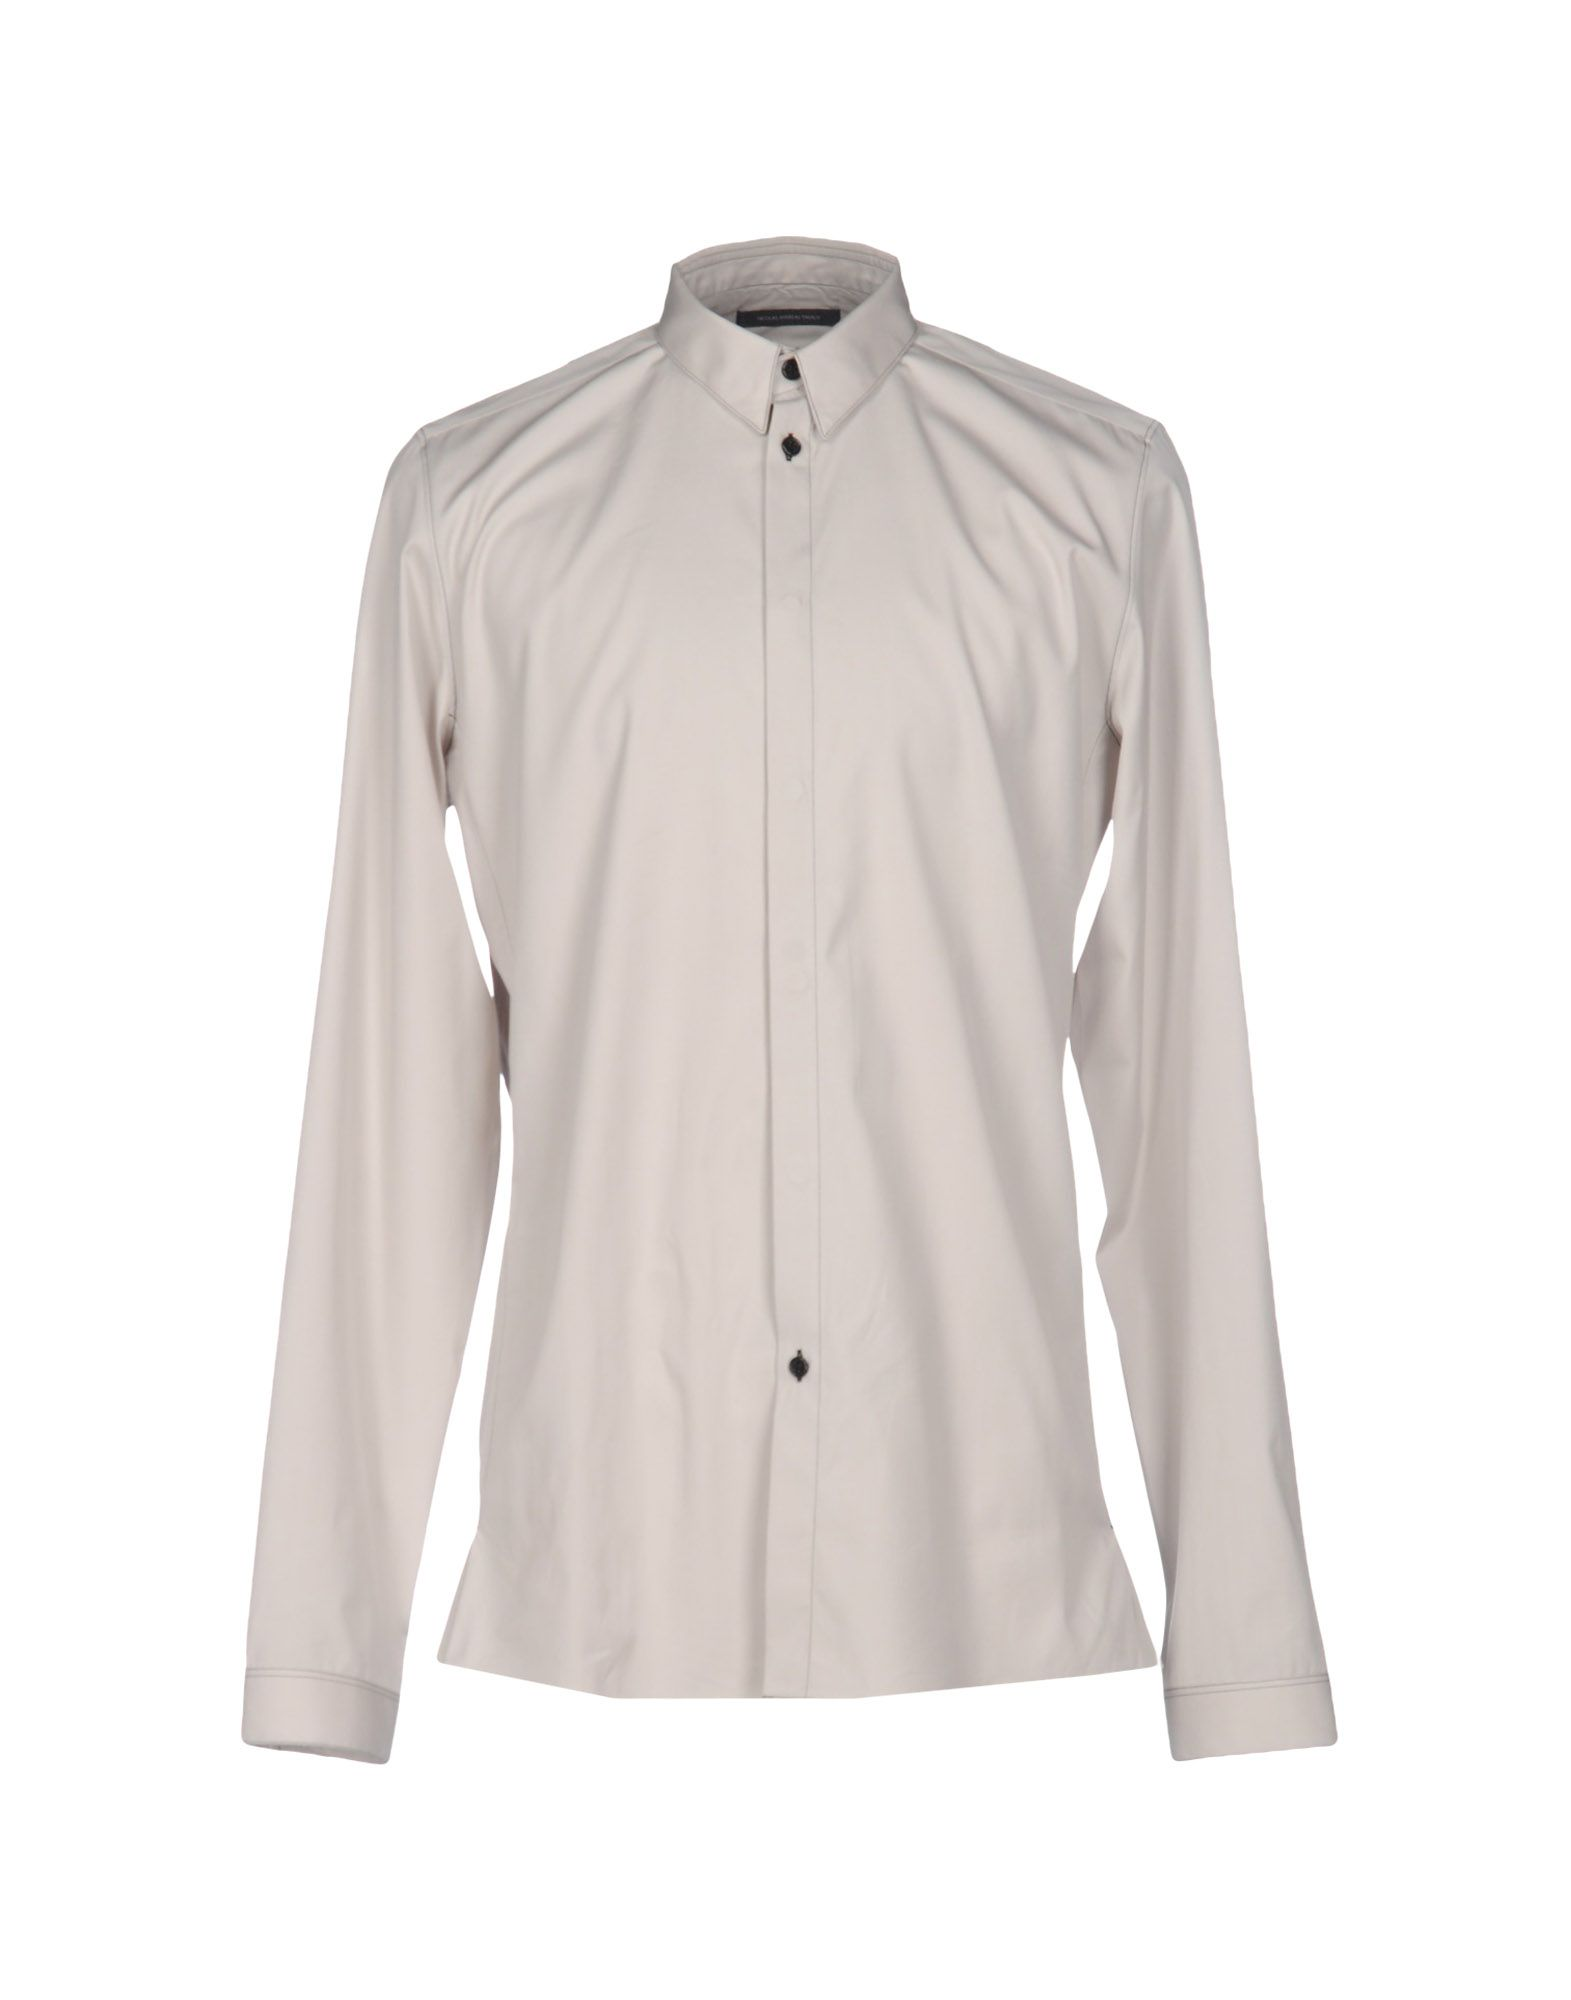 NICOLAS ANDREAS TARALIS Solid Color Shirt in Light Grey